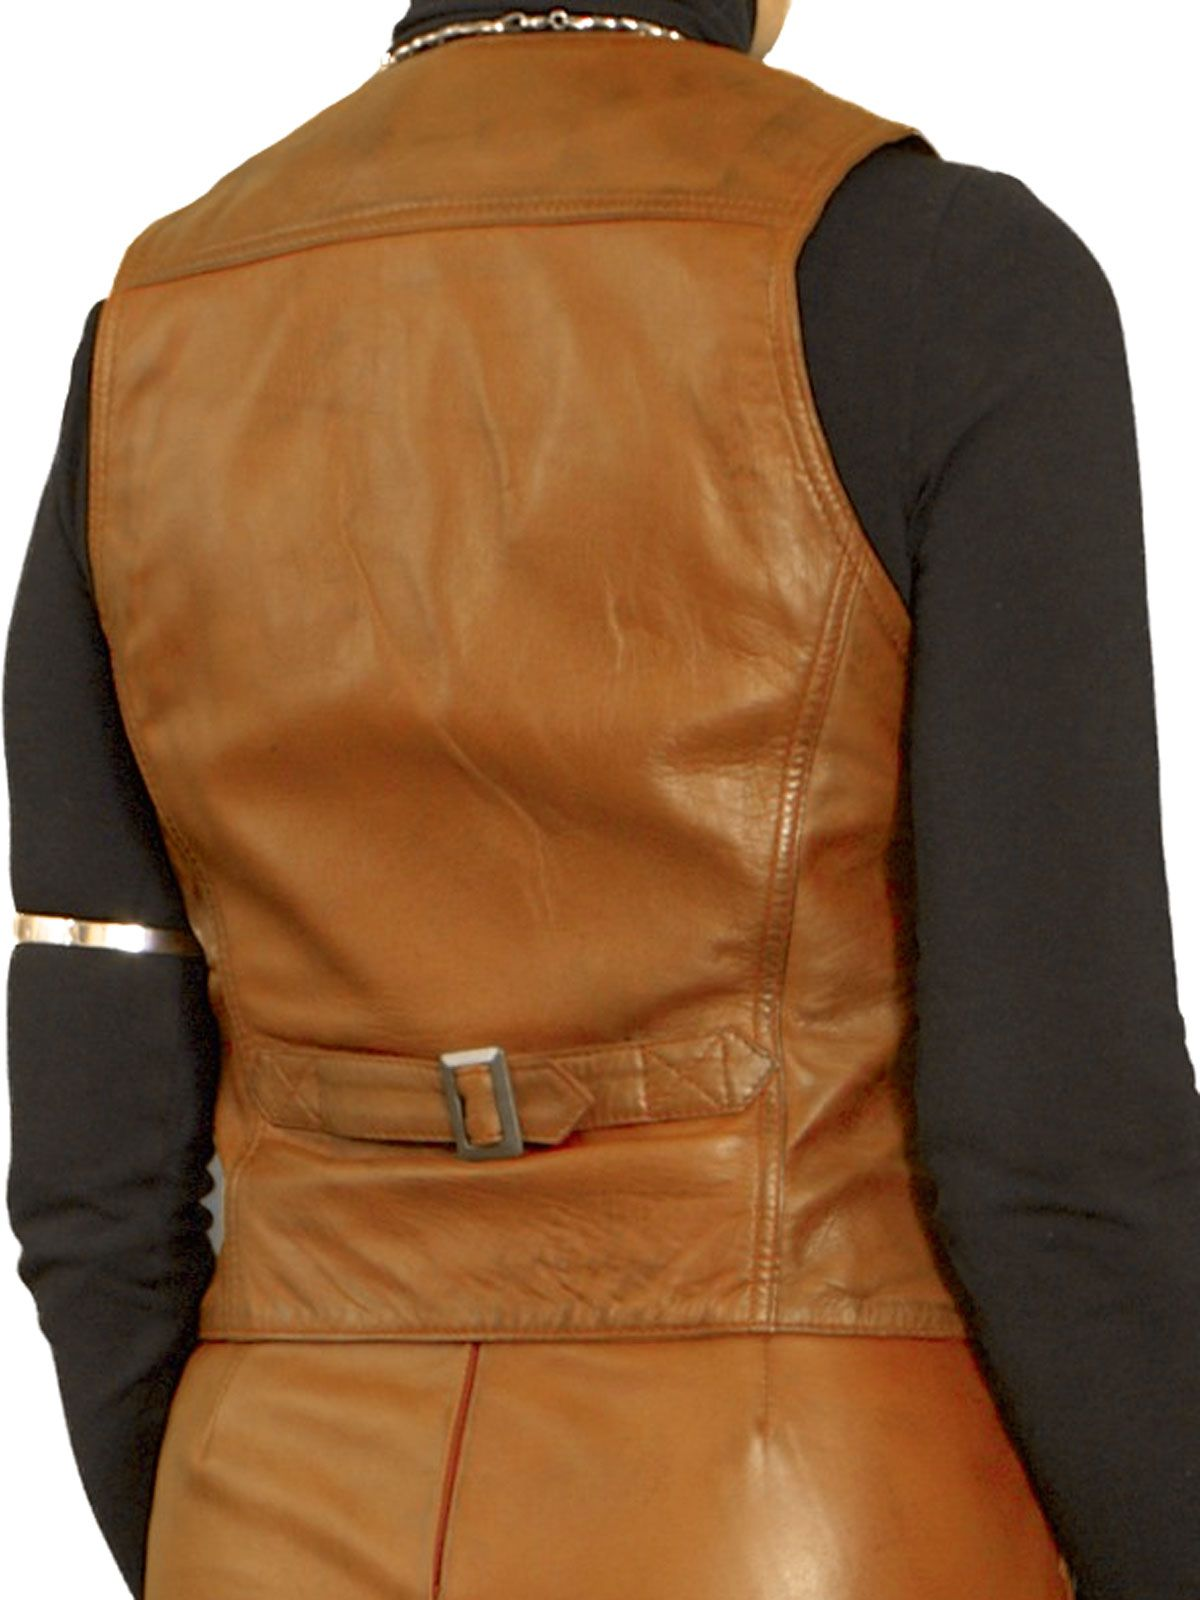 6e5a1b2c60a6c Womens Tan Luxury Leather Waistcoat with back buckle belt. Made in finest  soft semi-aniline lambskin nappa leather. Also in black and cherry red